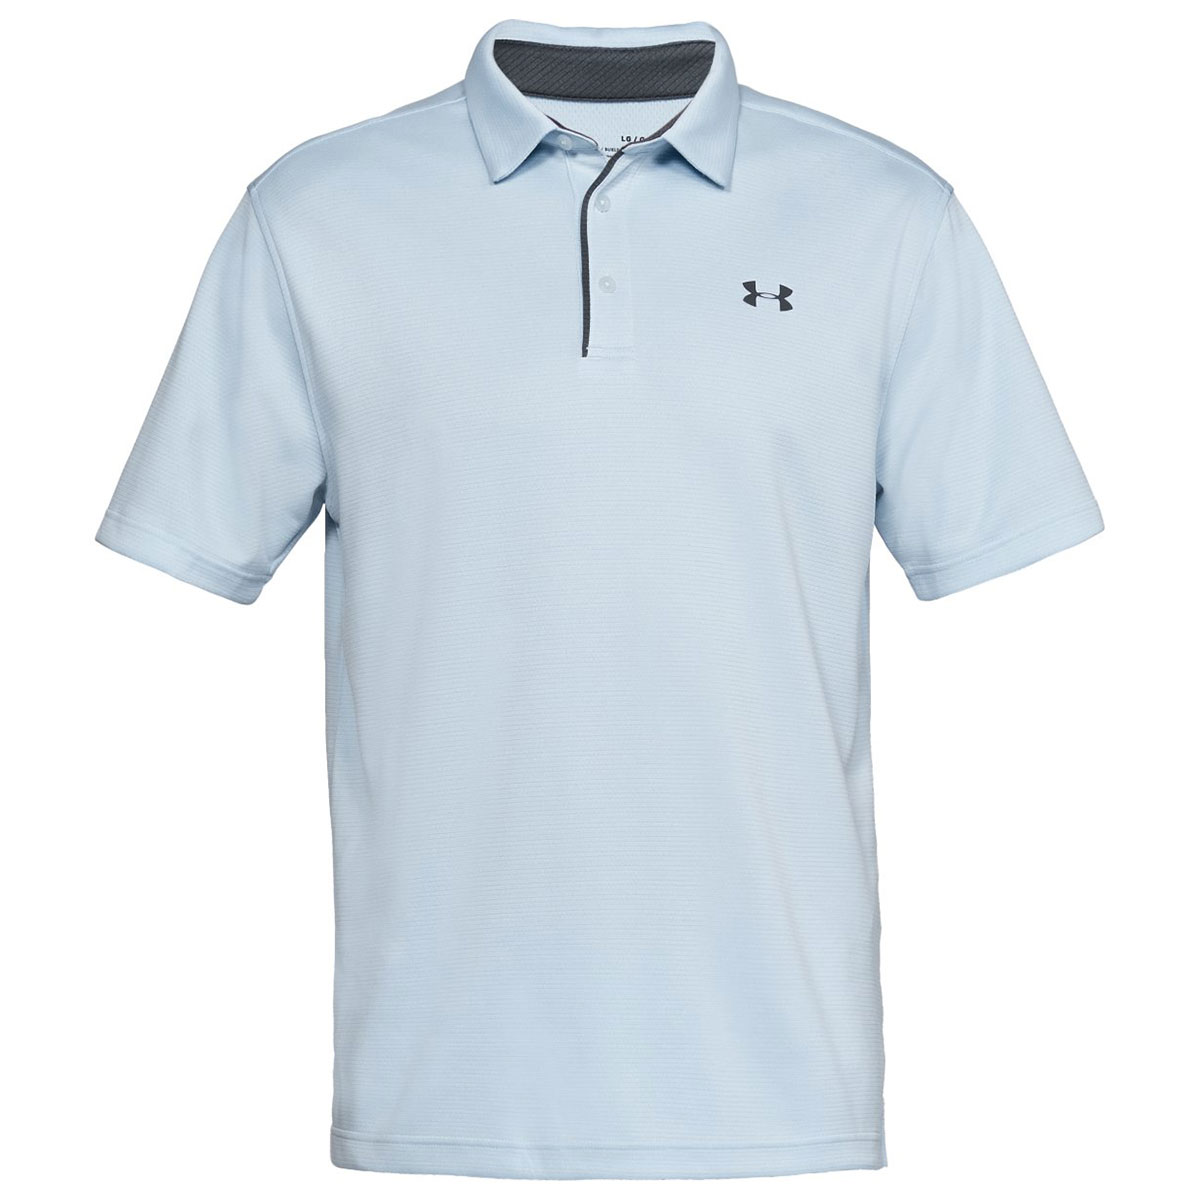 Under-Armour-Mens-Golf-Tech-Wicking-Textured-Soft-Light-Polo-Shirt thumbnail 26